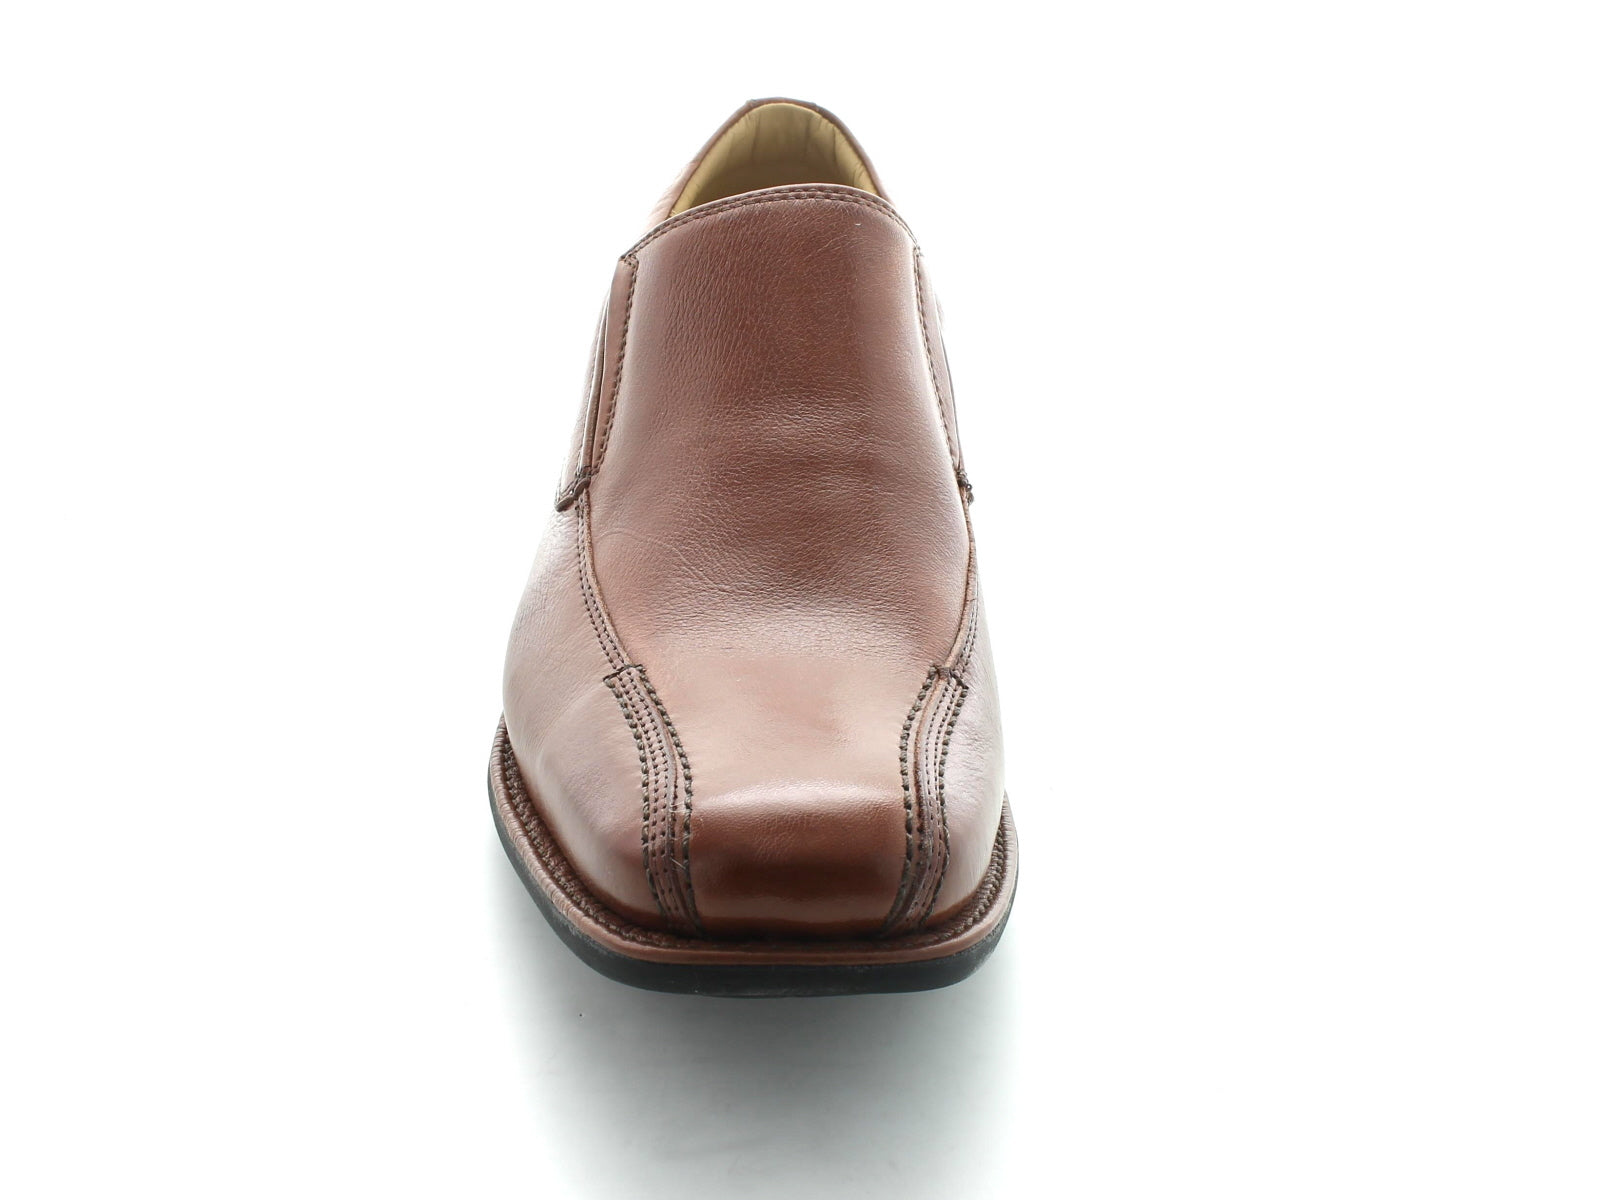 Anatomic & Co Belem in Tan Leather front view